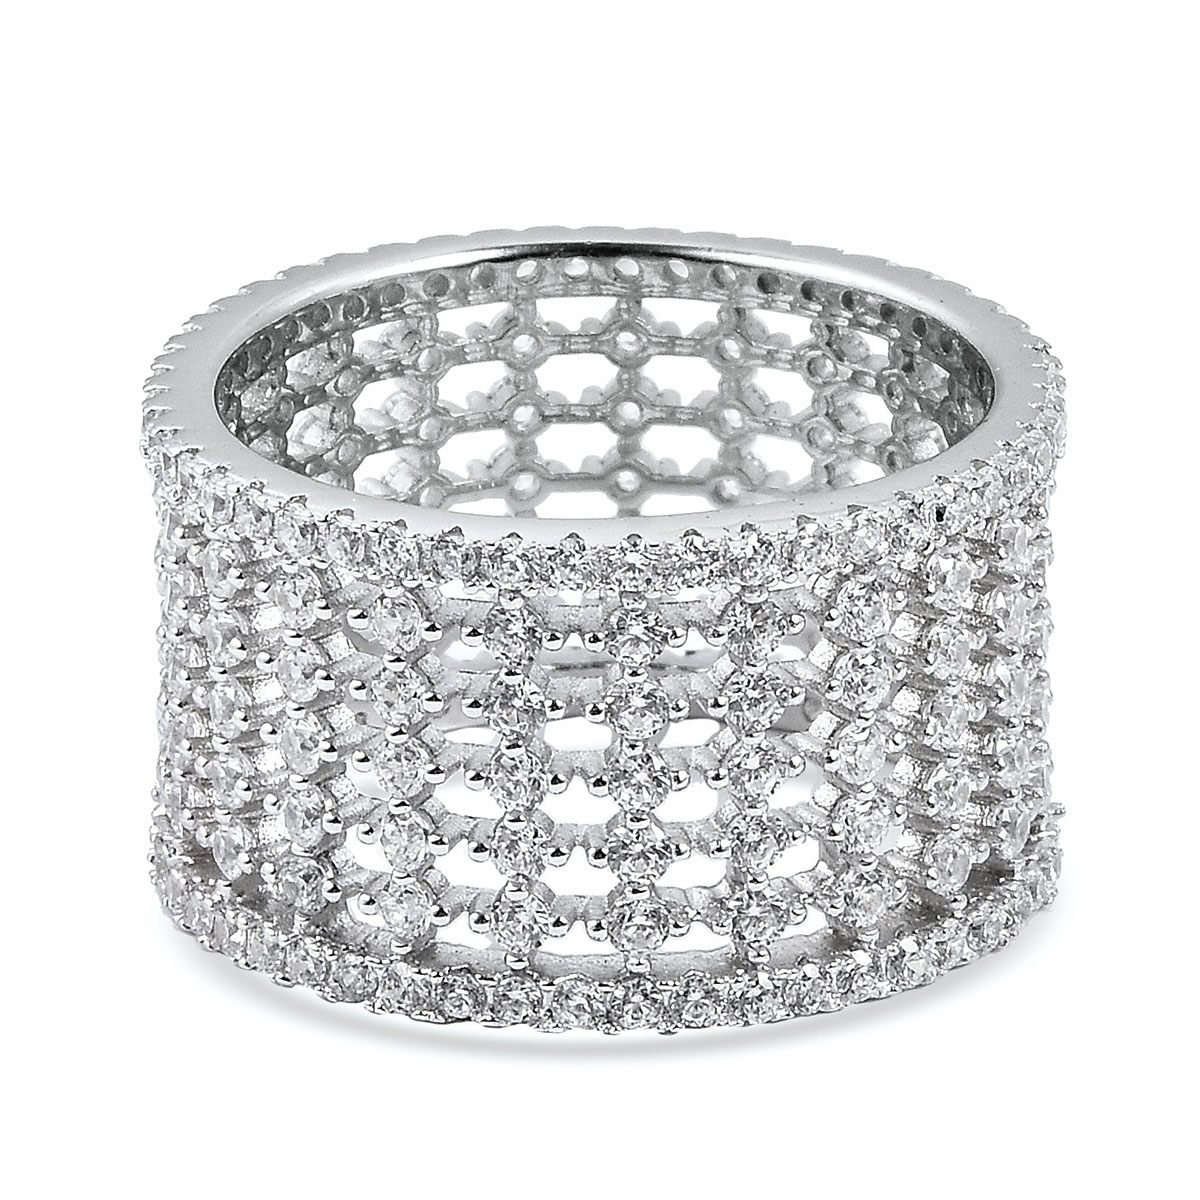 LUSTRO STELLA CZ Band Ring in Sterling Silver (Size 7.0) 3.30 ctw